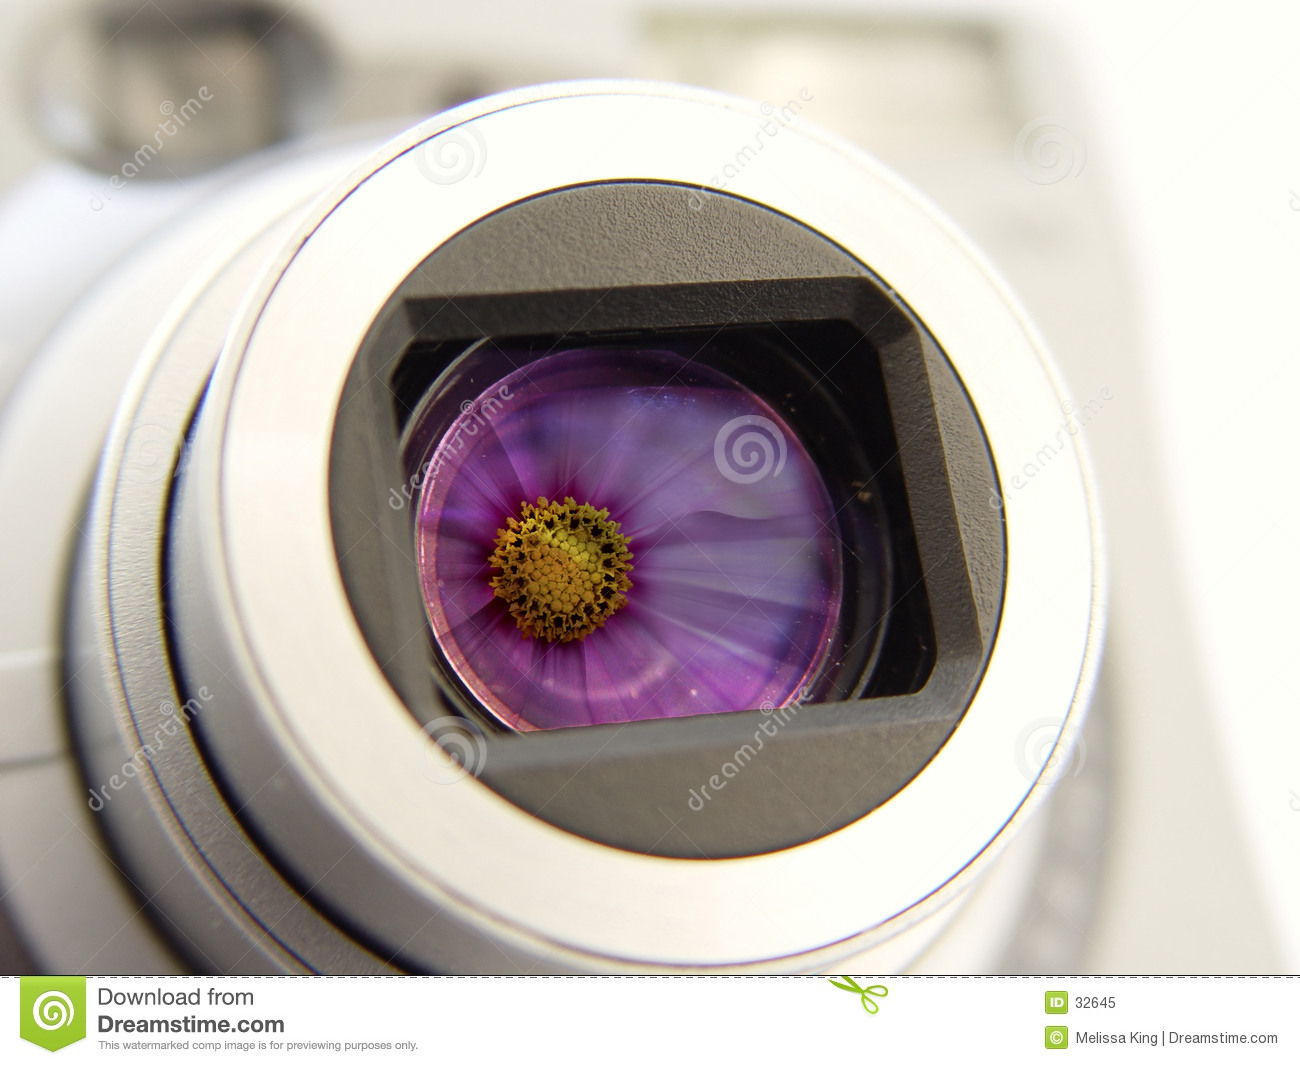 Camera with Flowers Reflection